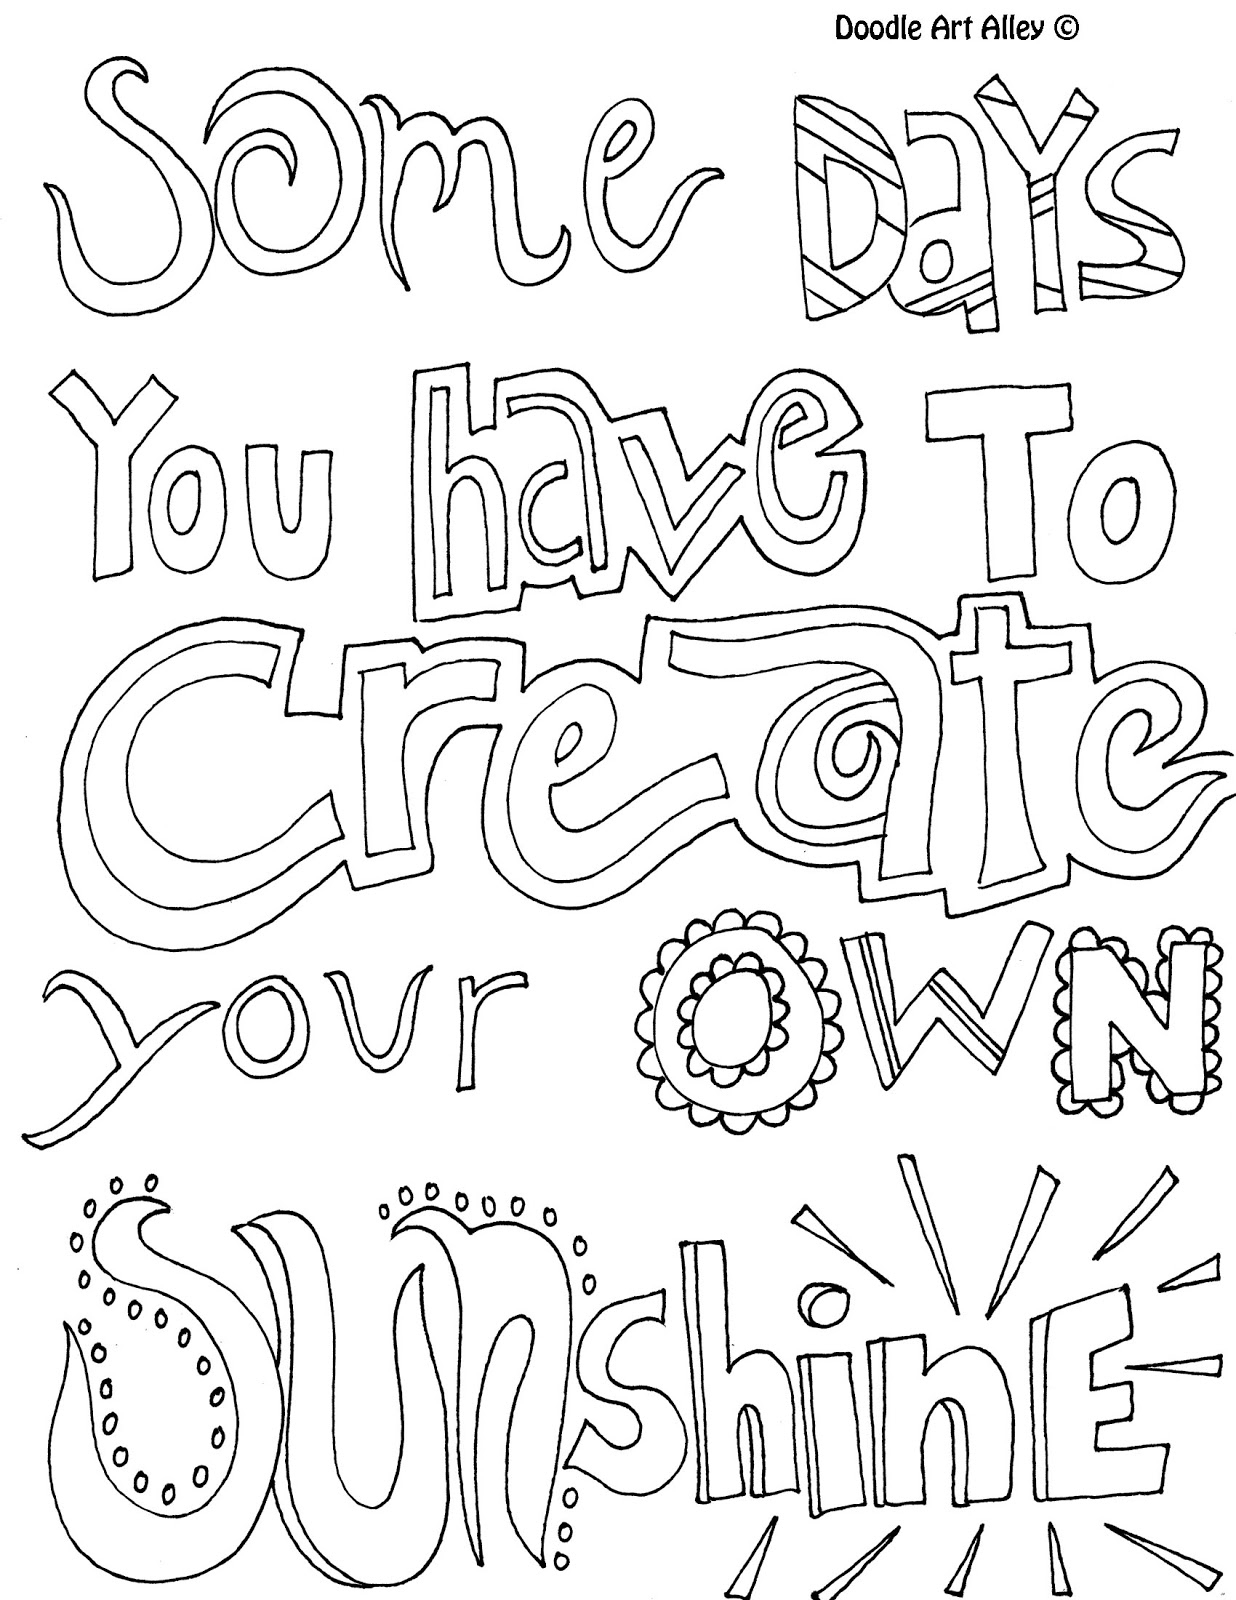 Coloring Pages : Make Your Own Coloring Book Online Free Page For At - Make A Printable Picture Book Online Free